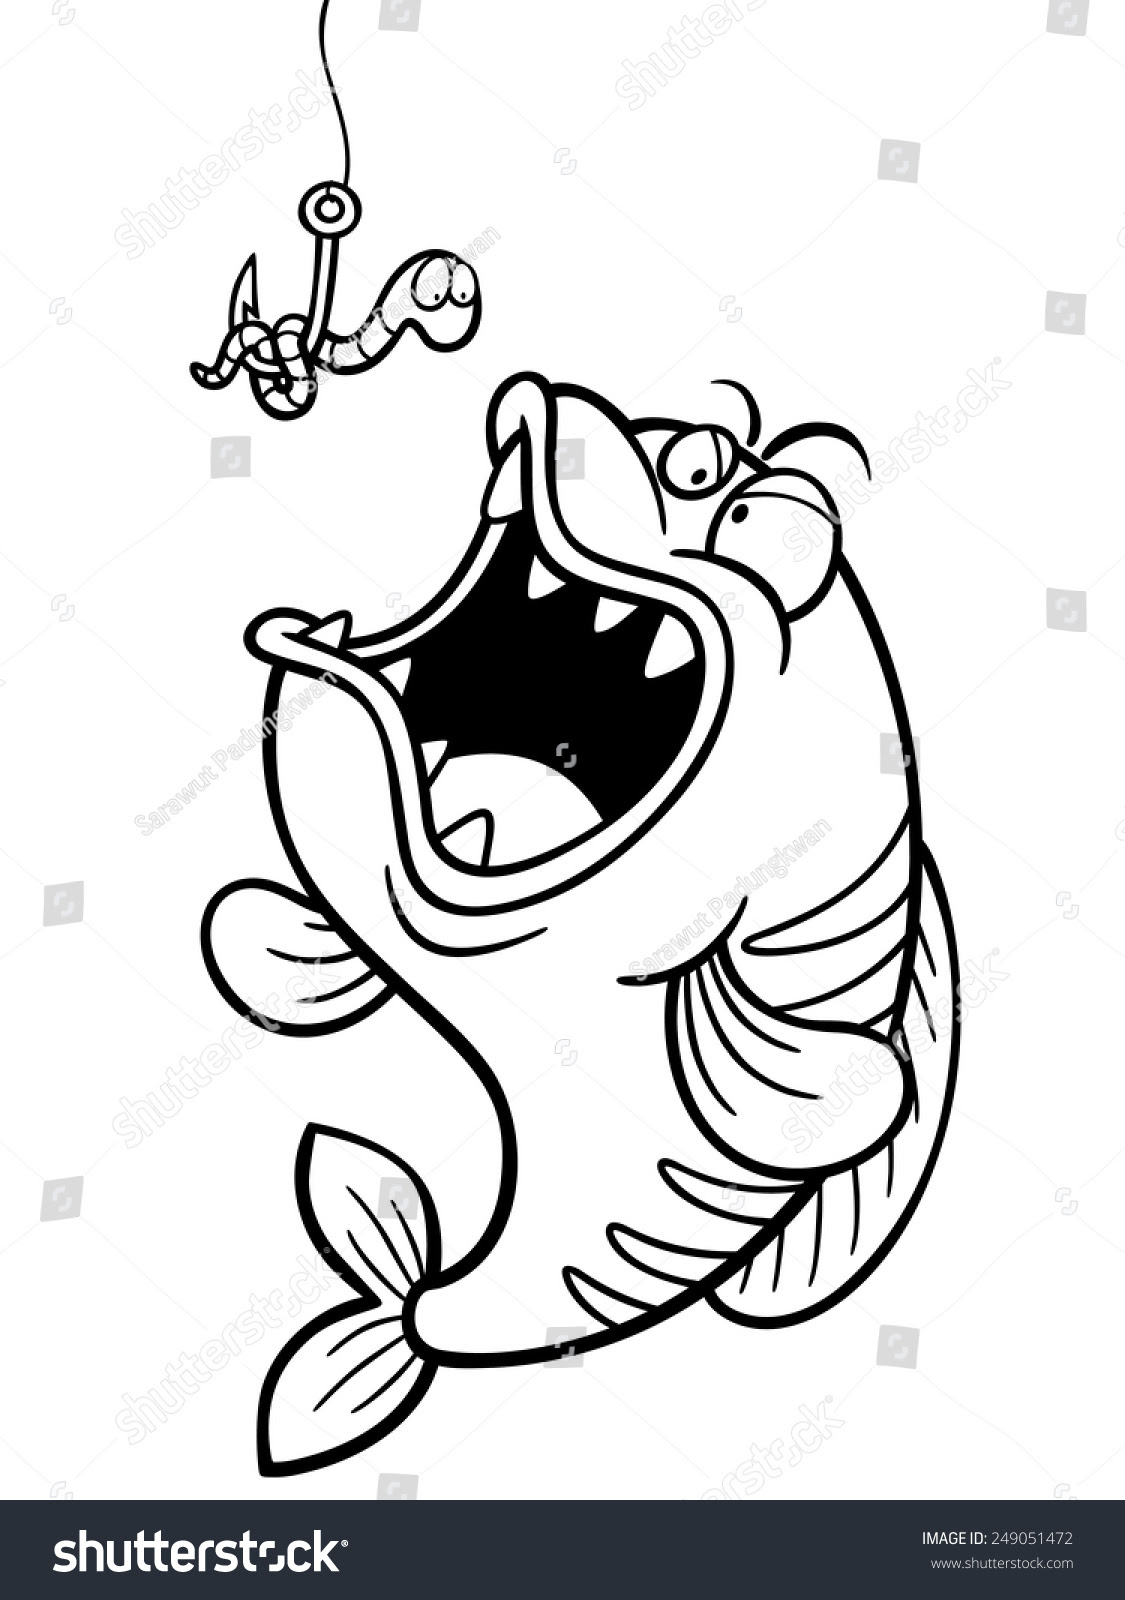 Vector Illustration Of Fish With Fishing Hook - Coloring ...